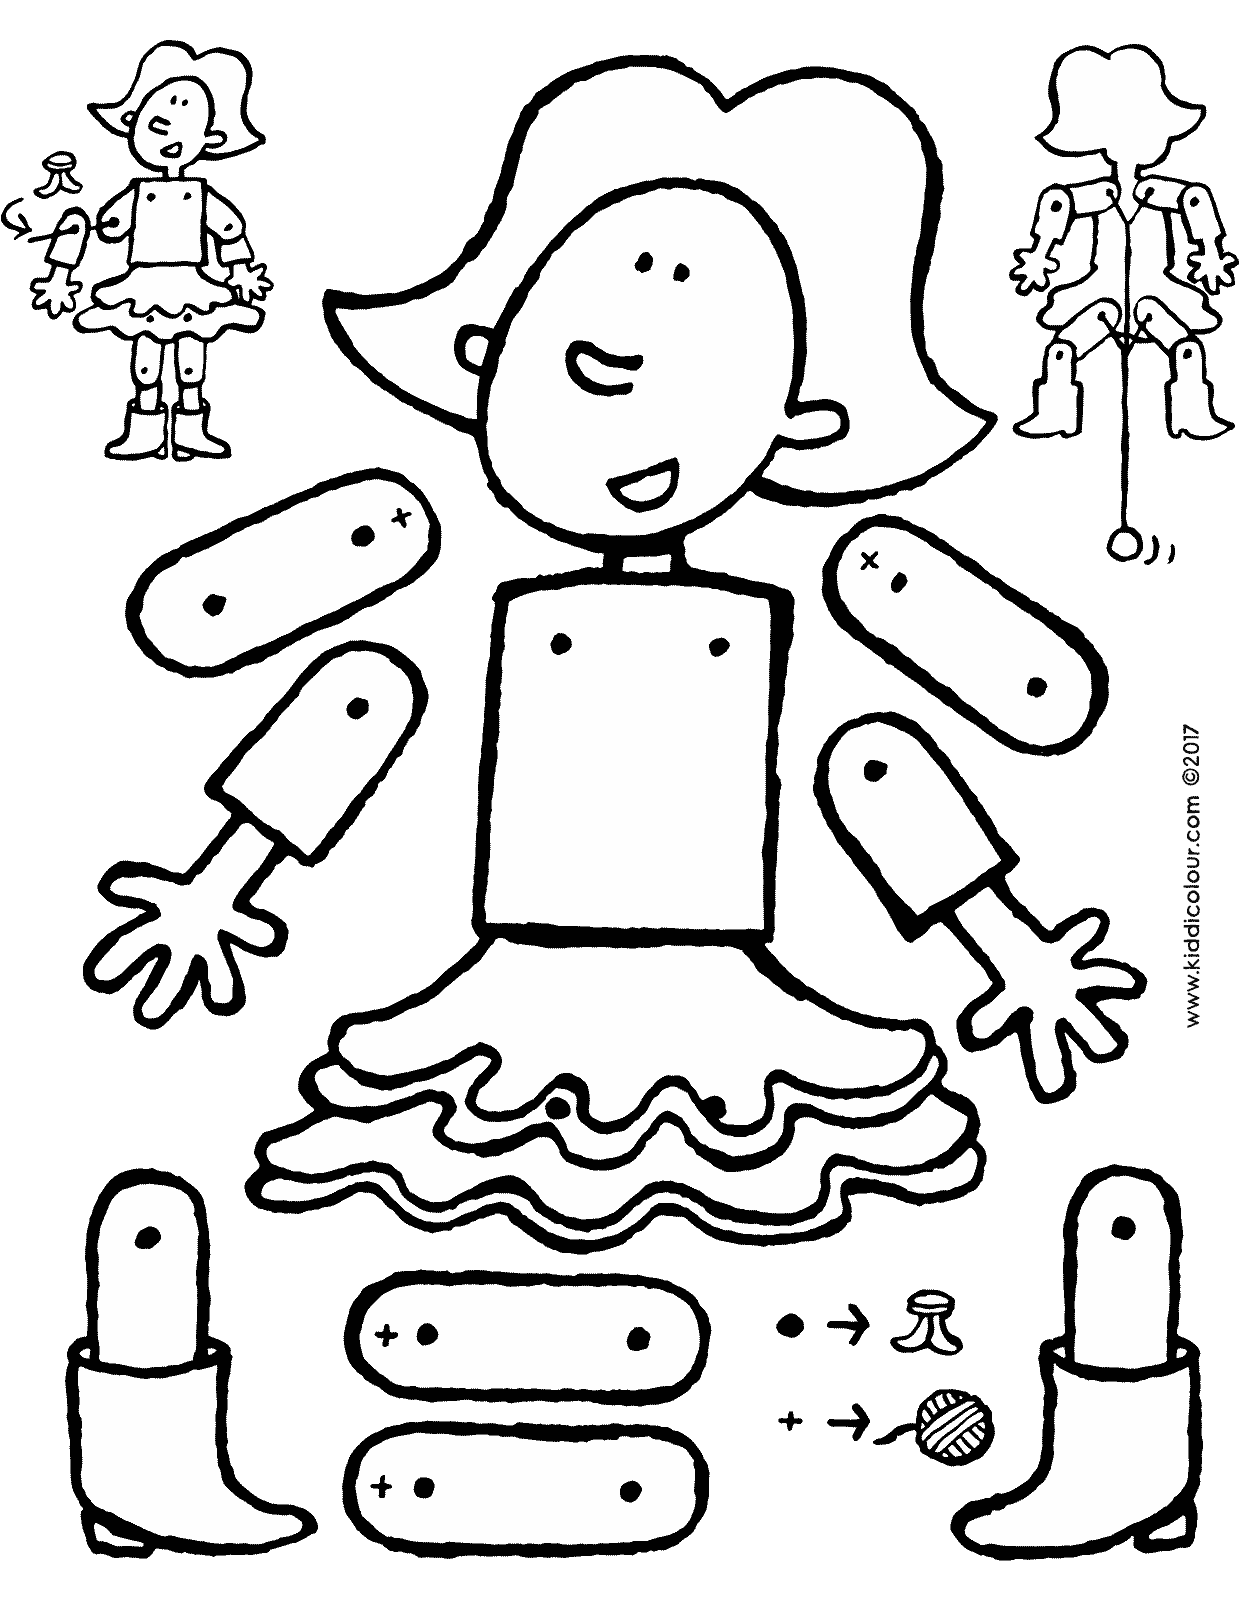 Emma as a jumping jack doll colouring page 01V